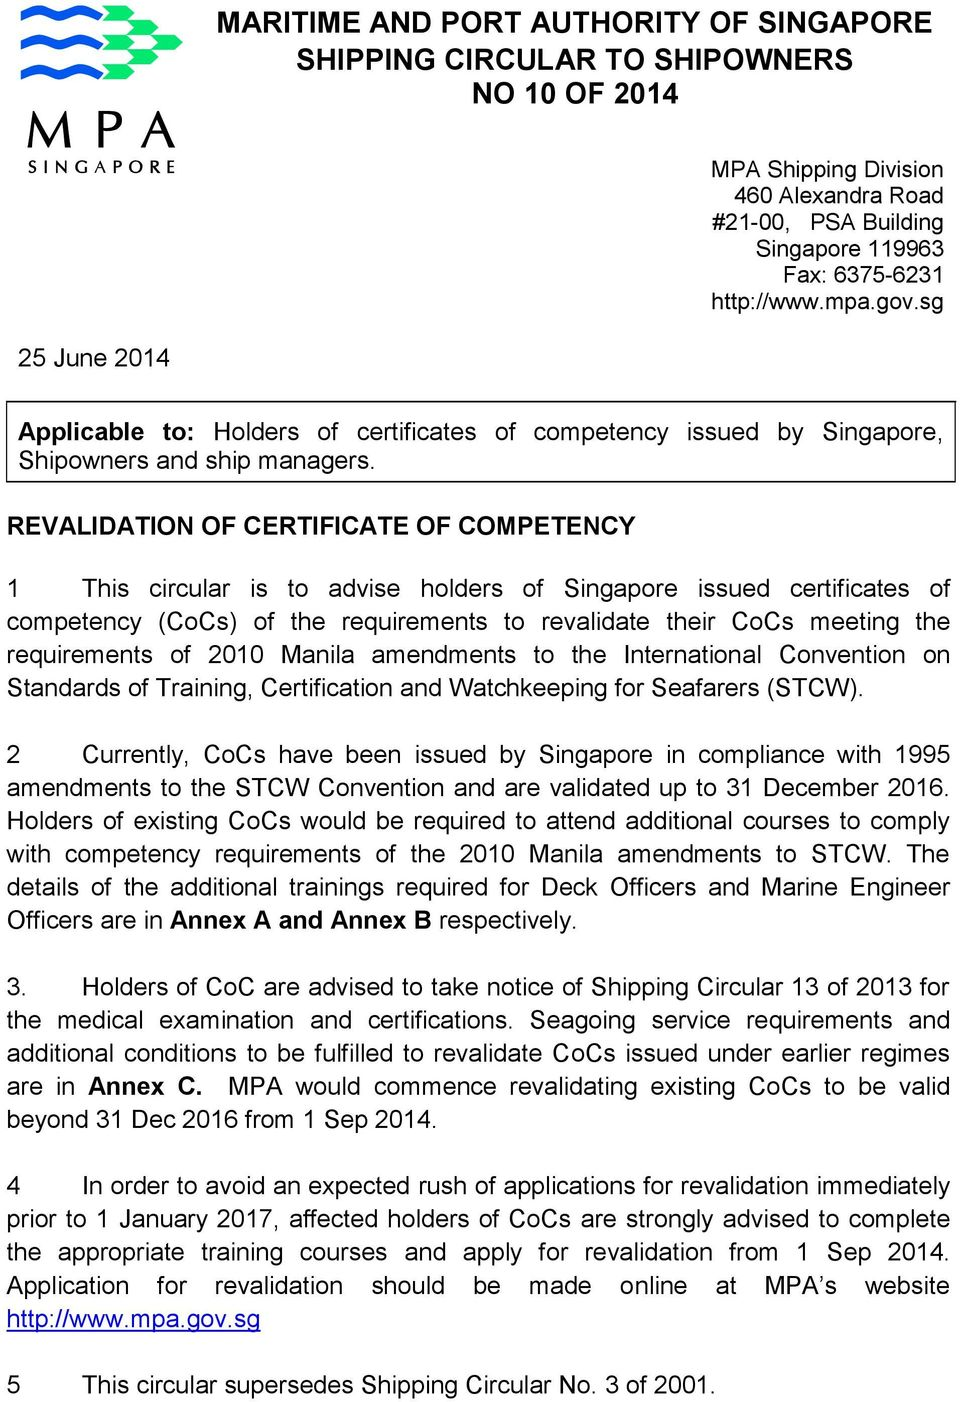 REVALIDATION OF CERTIFICATE OF COMPETENCY 1 This circular is to advise holders of Singapore issued certificates of competency (CoCs) of the requirements to revalidate their CoCs meeting the